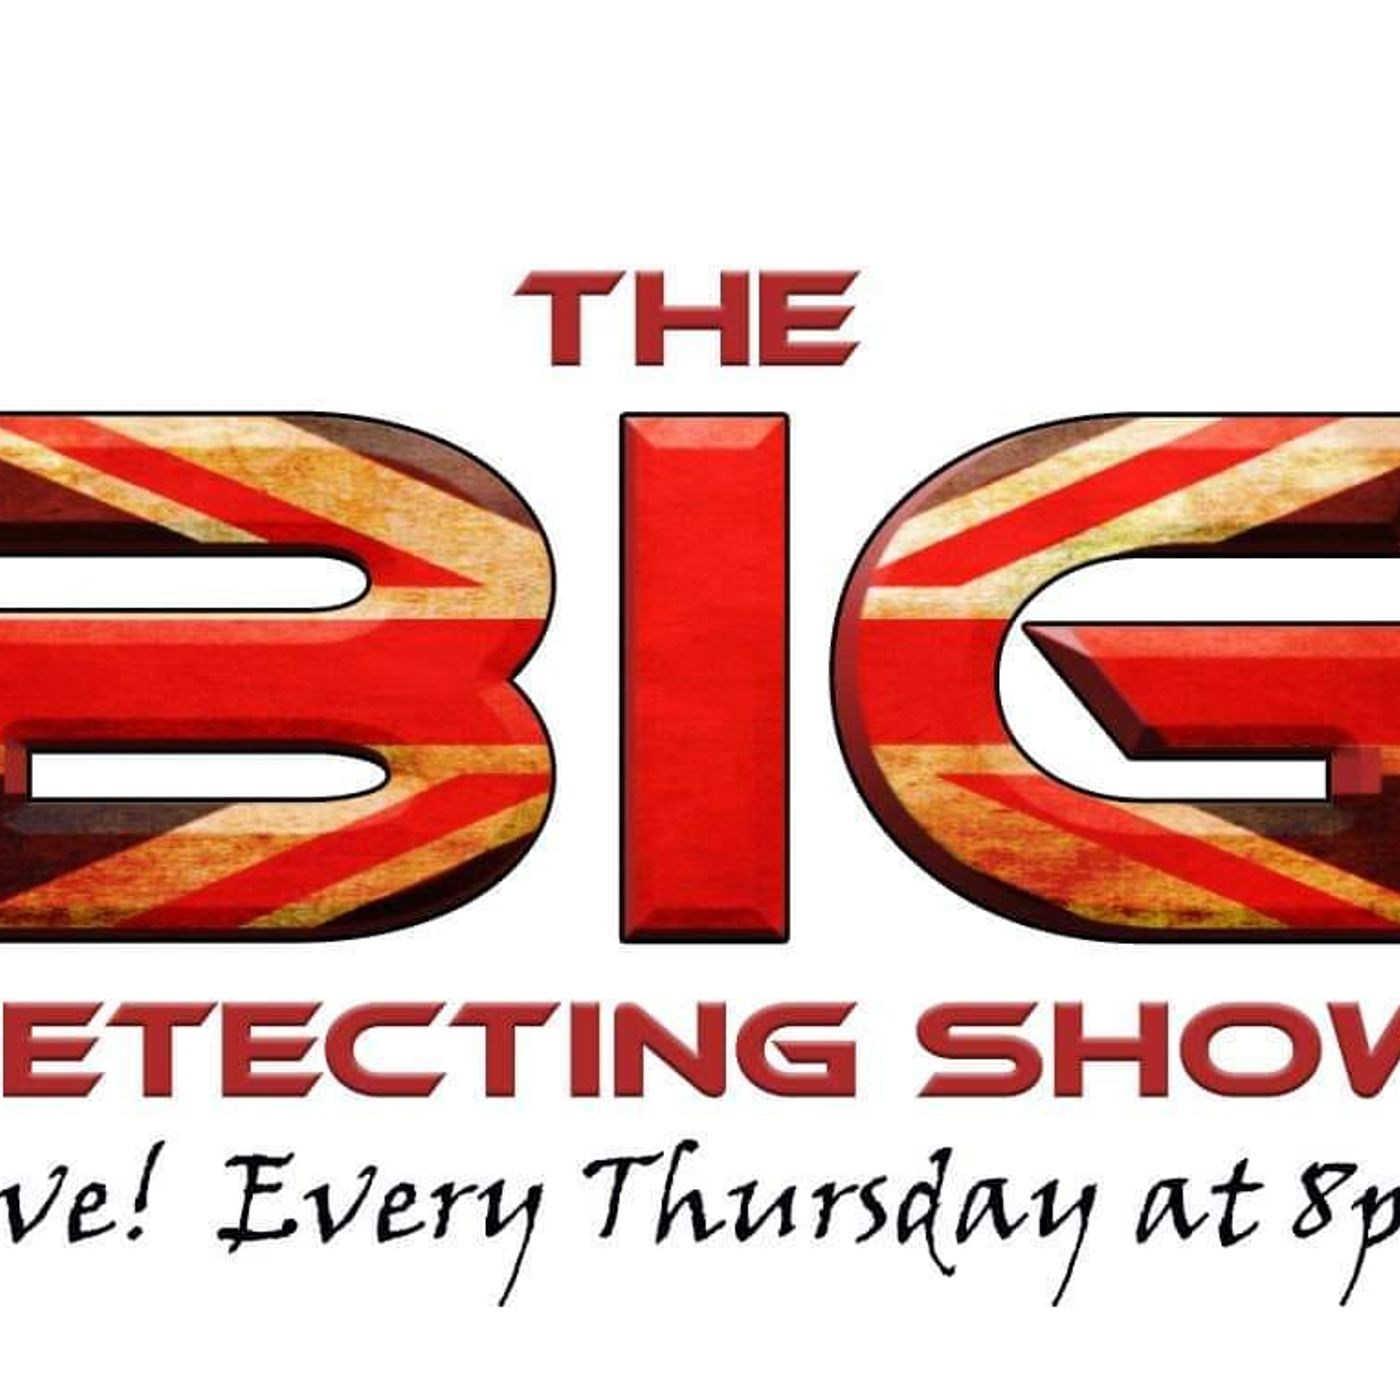 River Hunters Gary Bankhead in the BIG Detecting show